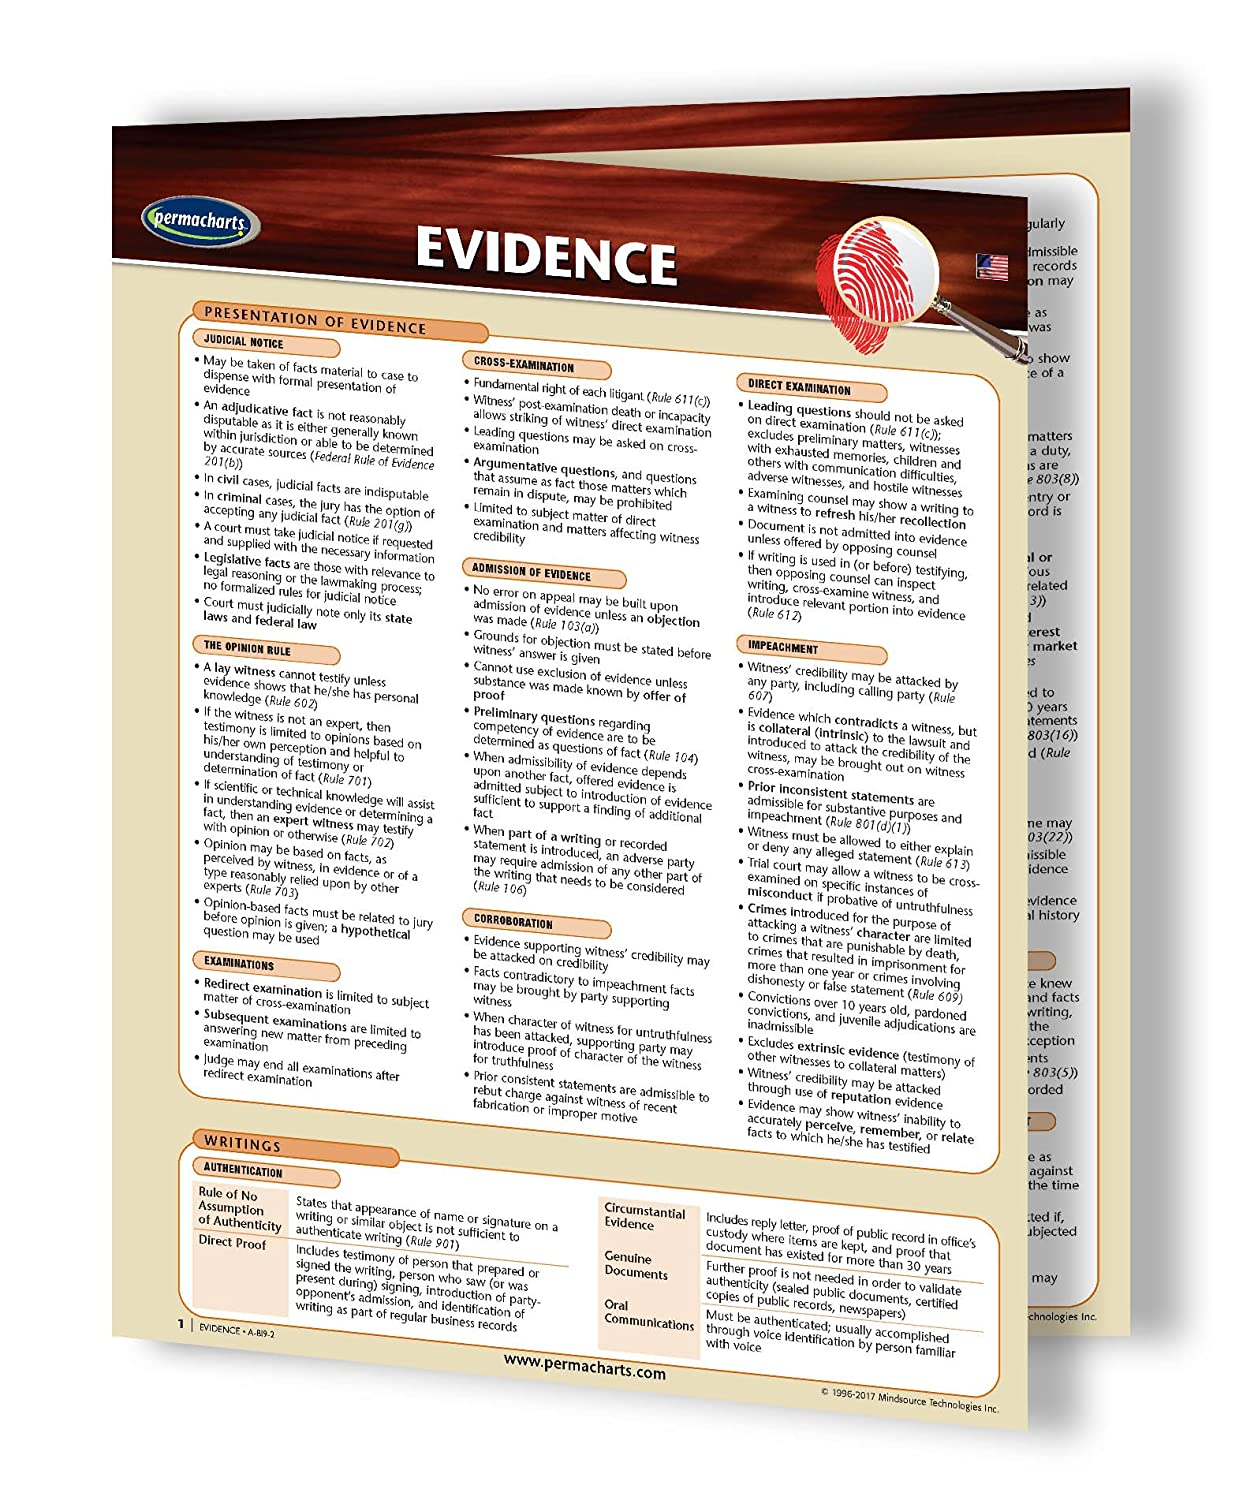 amazoncom evidence law guide guide legal studies quick reference guide by permacharts office products